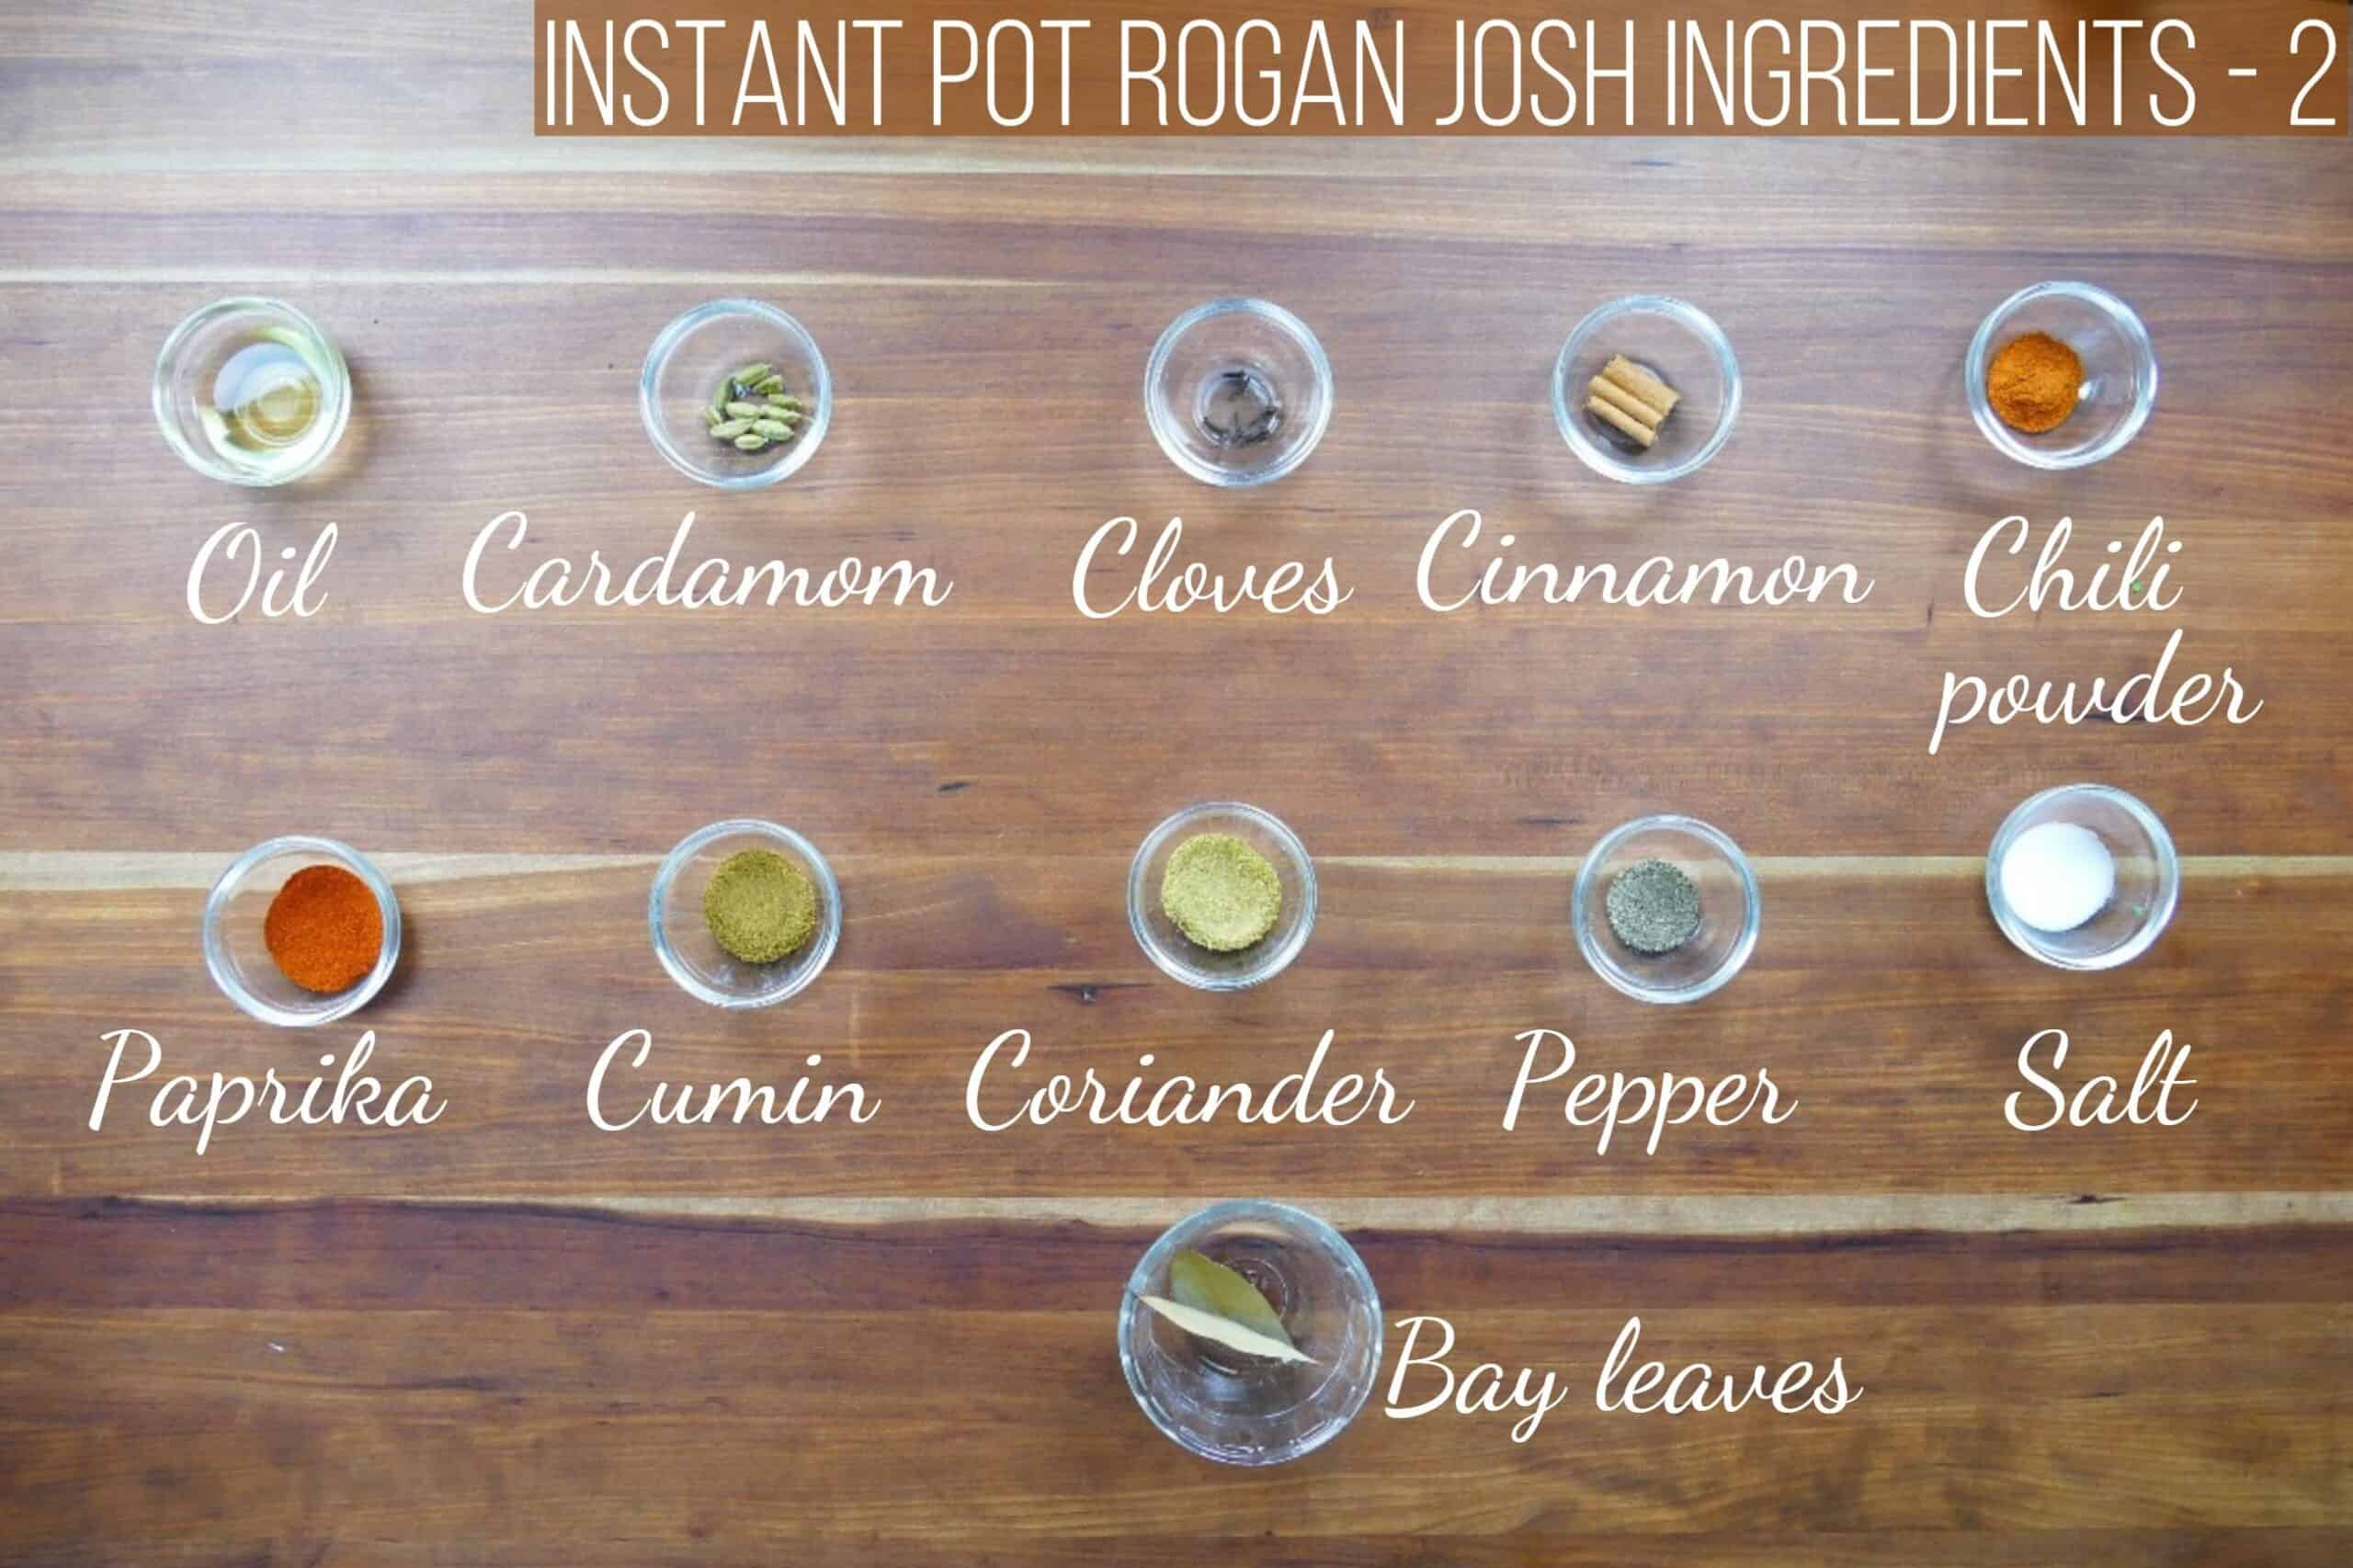 Instant Pot Rogan Josh ingredients - oil, cardamom, cloves, cinnamon, chili powder, paprika, cumin, coriander, pepper, salt, bay leaves